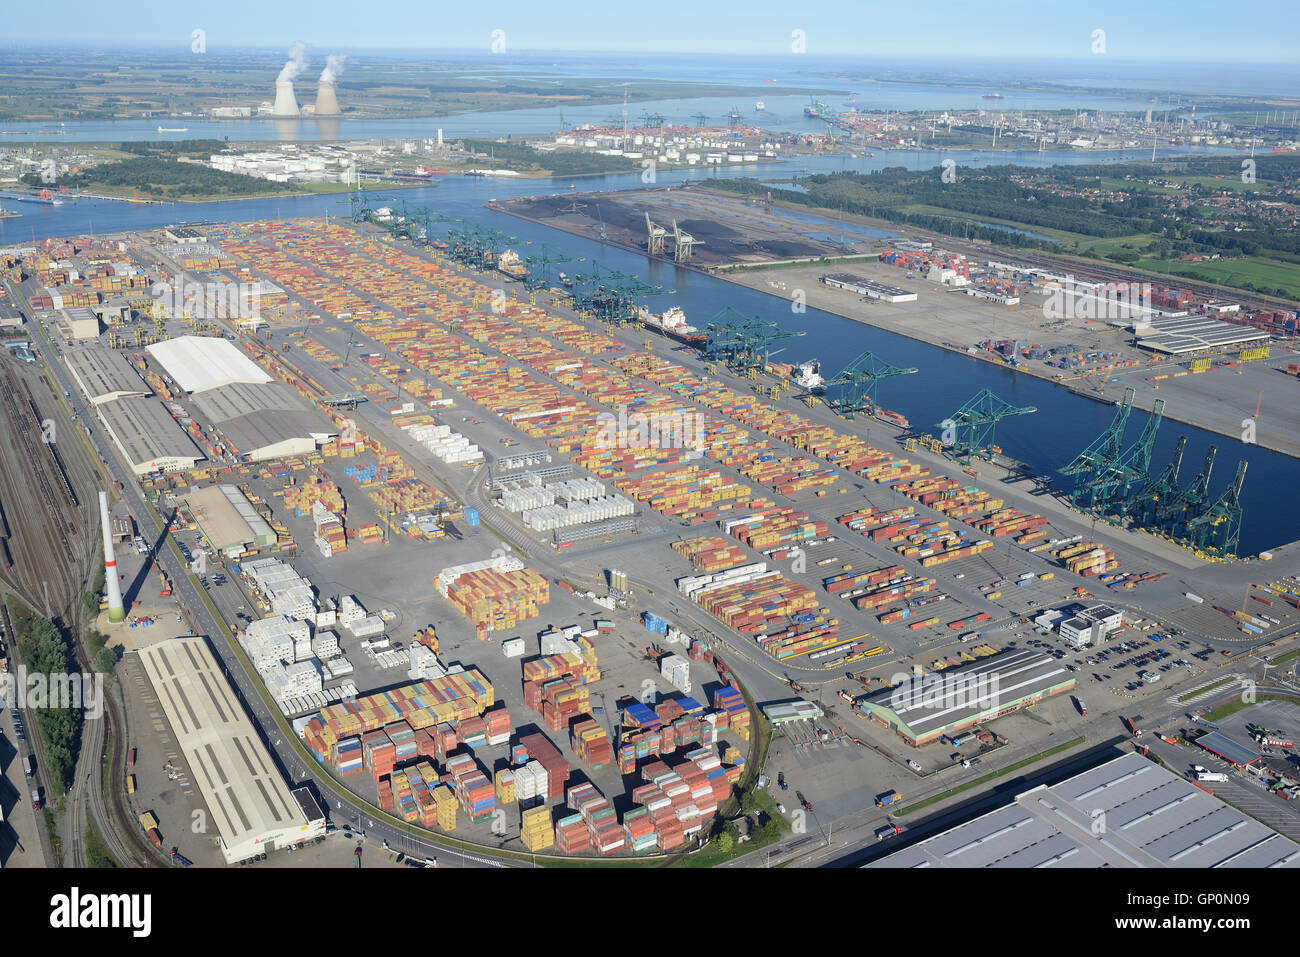 CONTAINERS & CRANES ON DELWAIDE DOCK (aerial view). Delwaidedok, Antwerp Harbor, Belgium. Stock Photo